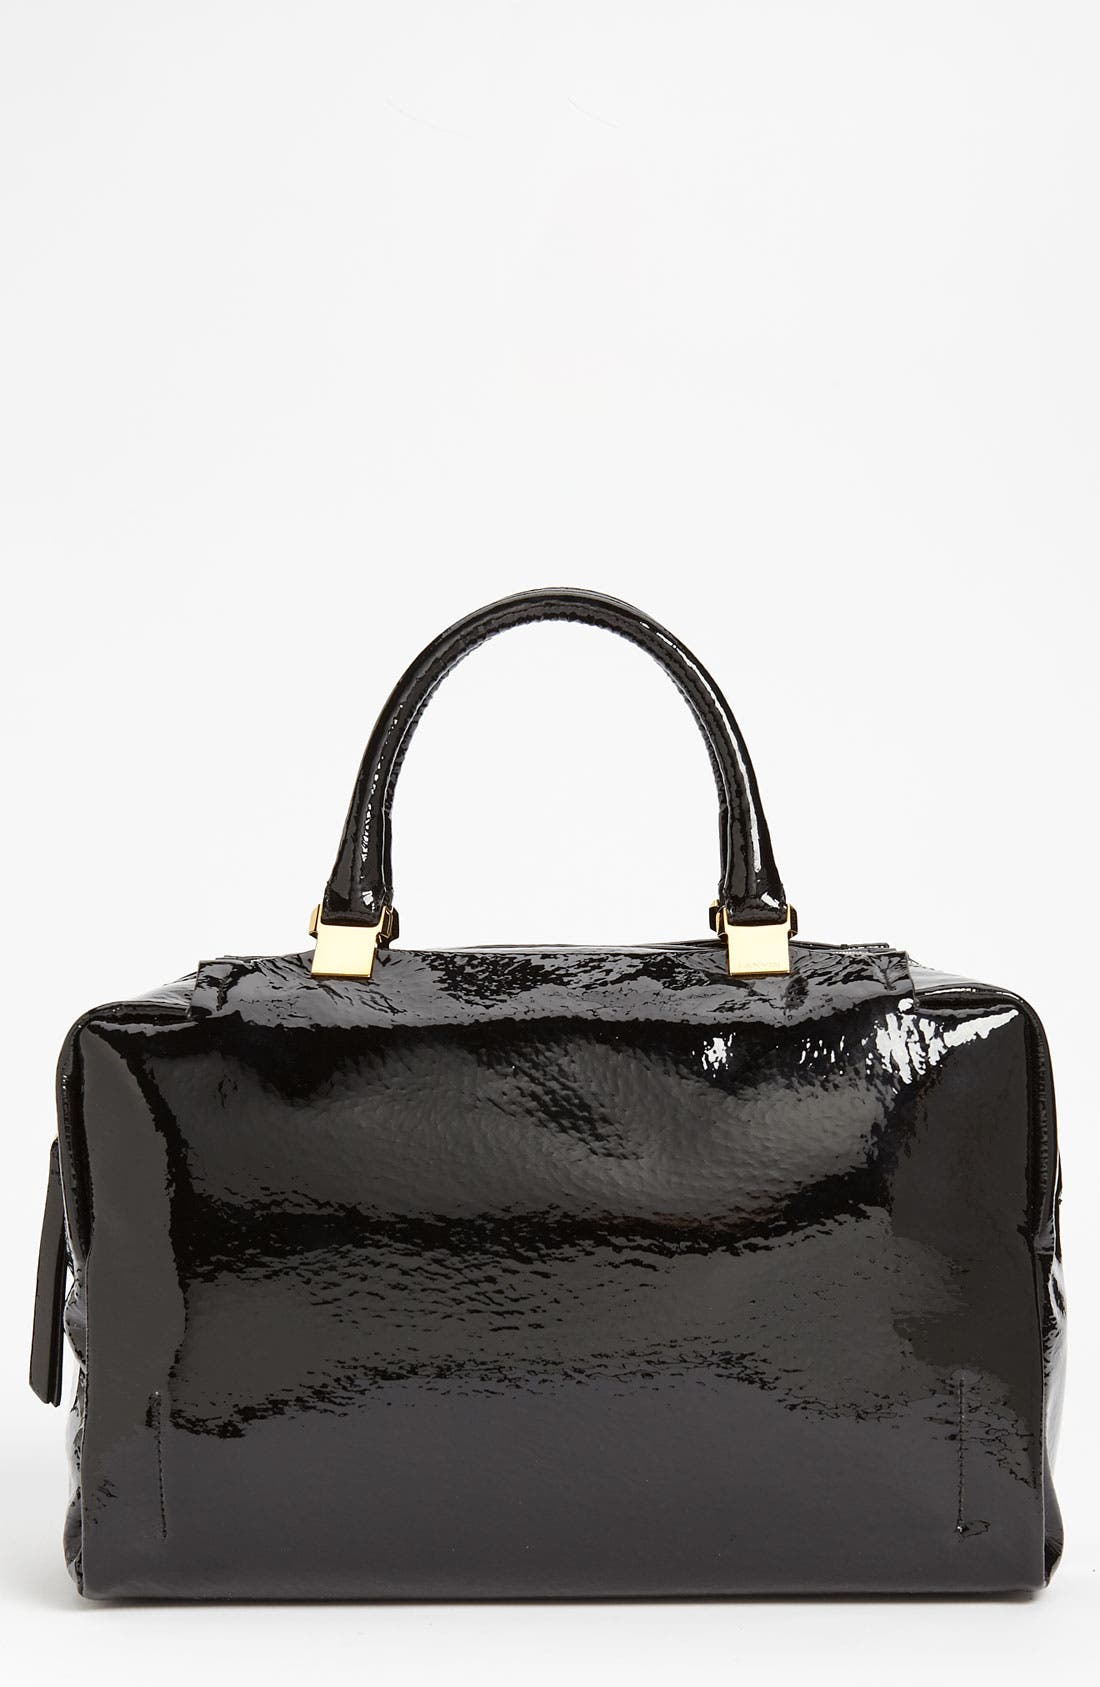 Main Image - Lanvin 'Moon River' Patent Leather Satchel